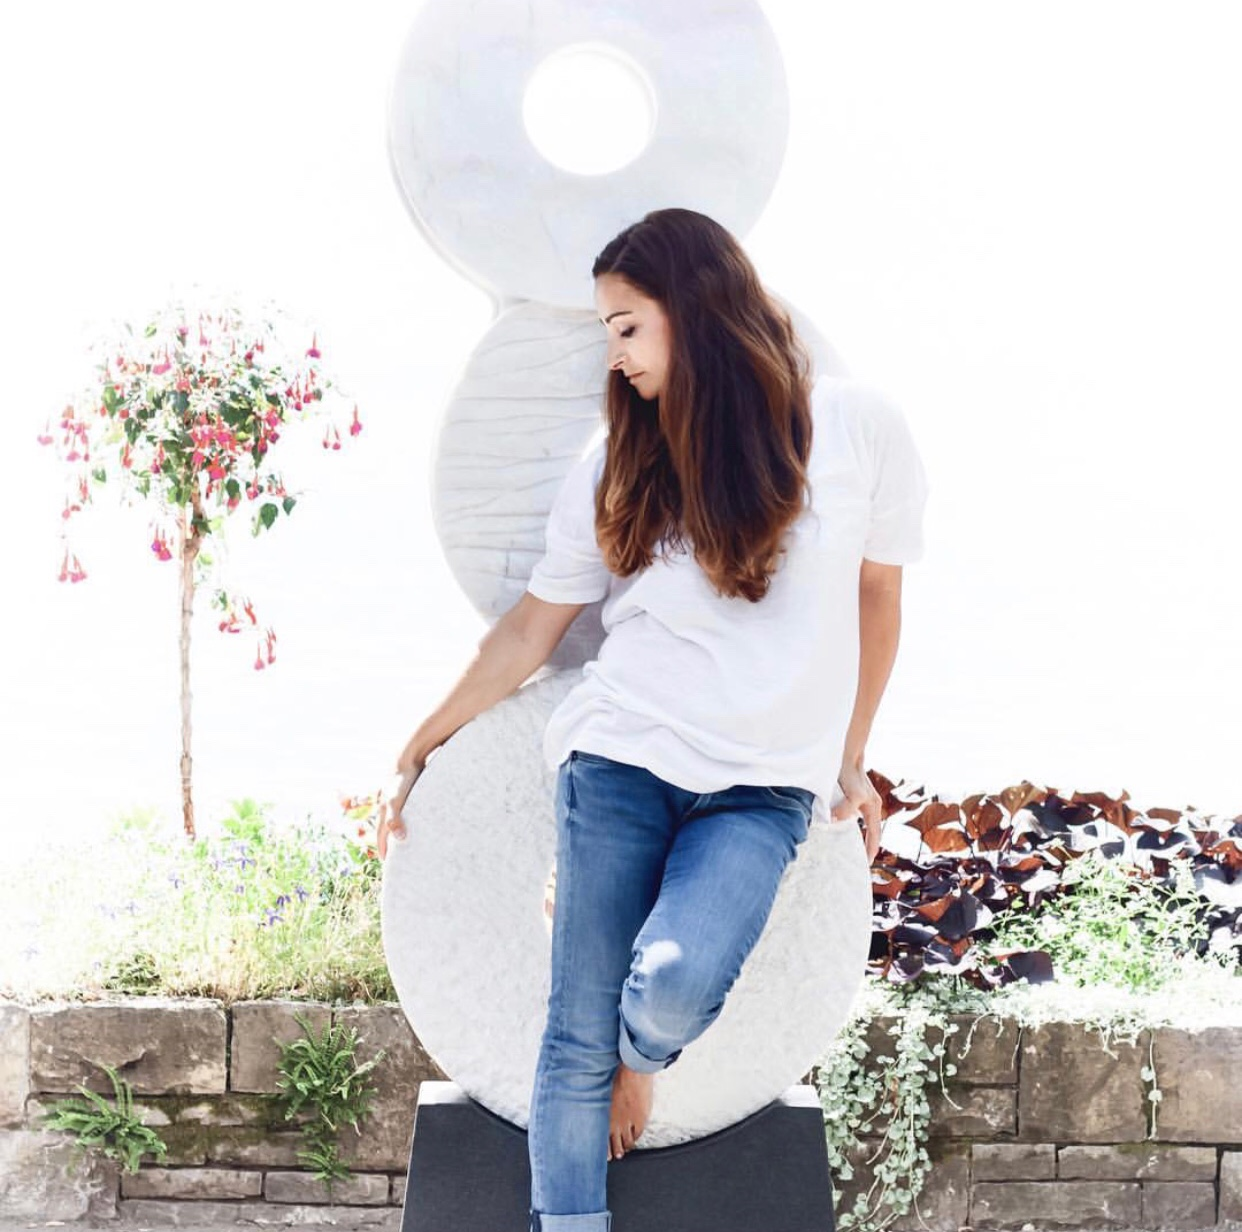 Alexia Weill with her signature circular stone sculptures. Image courtesy of the artist.